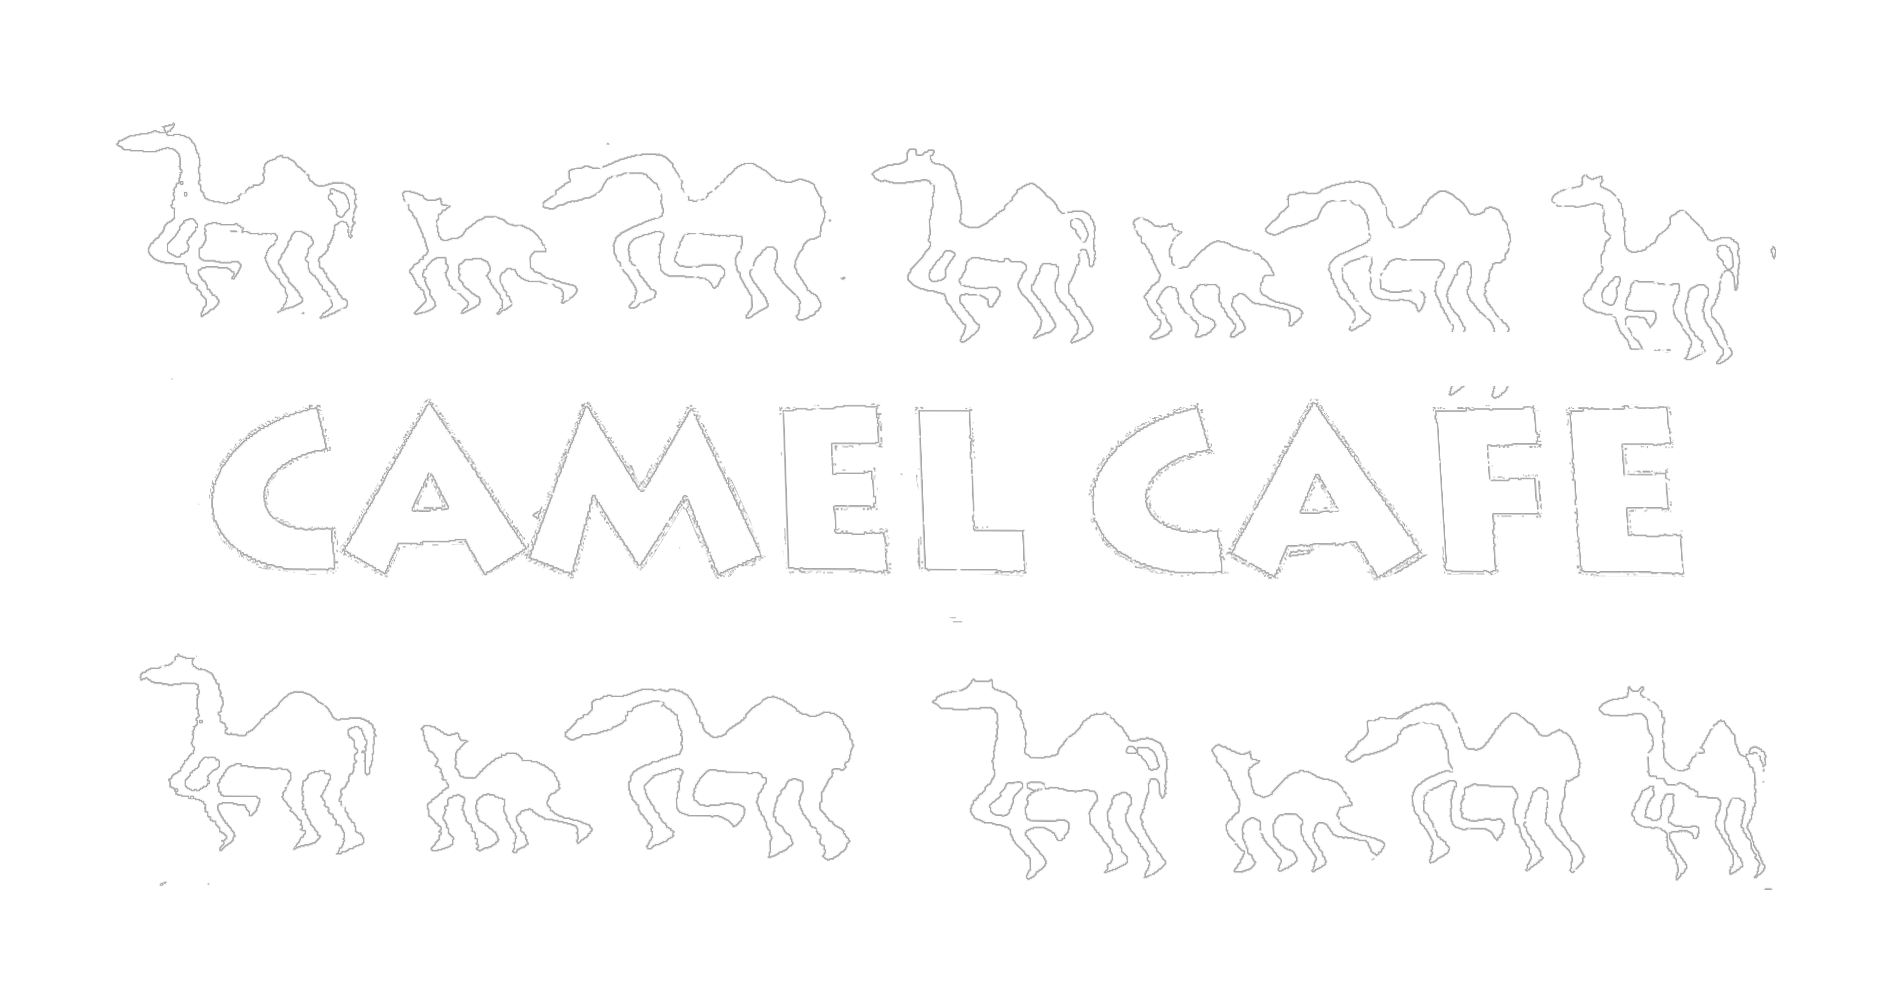 camel-cafe-rev-2.png